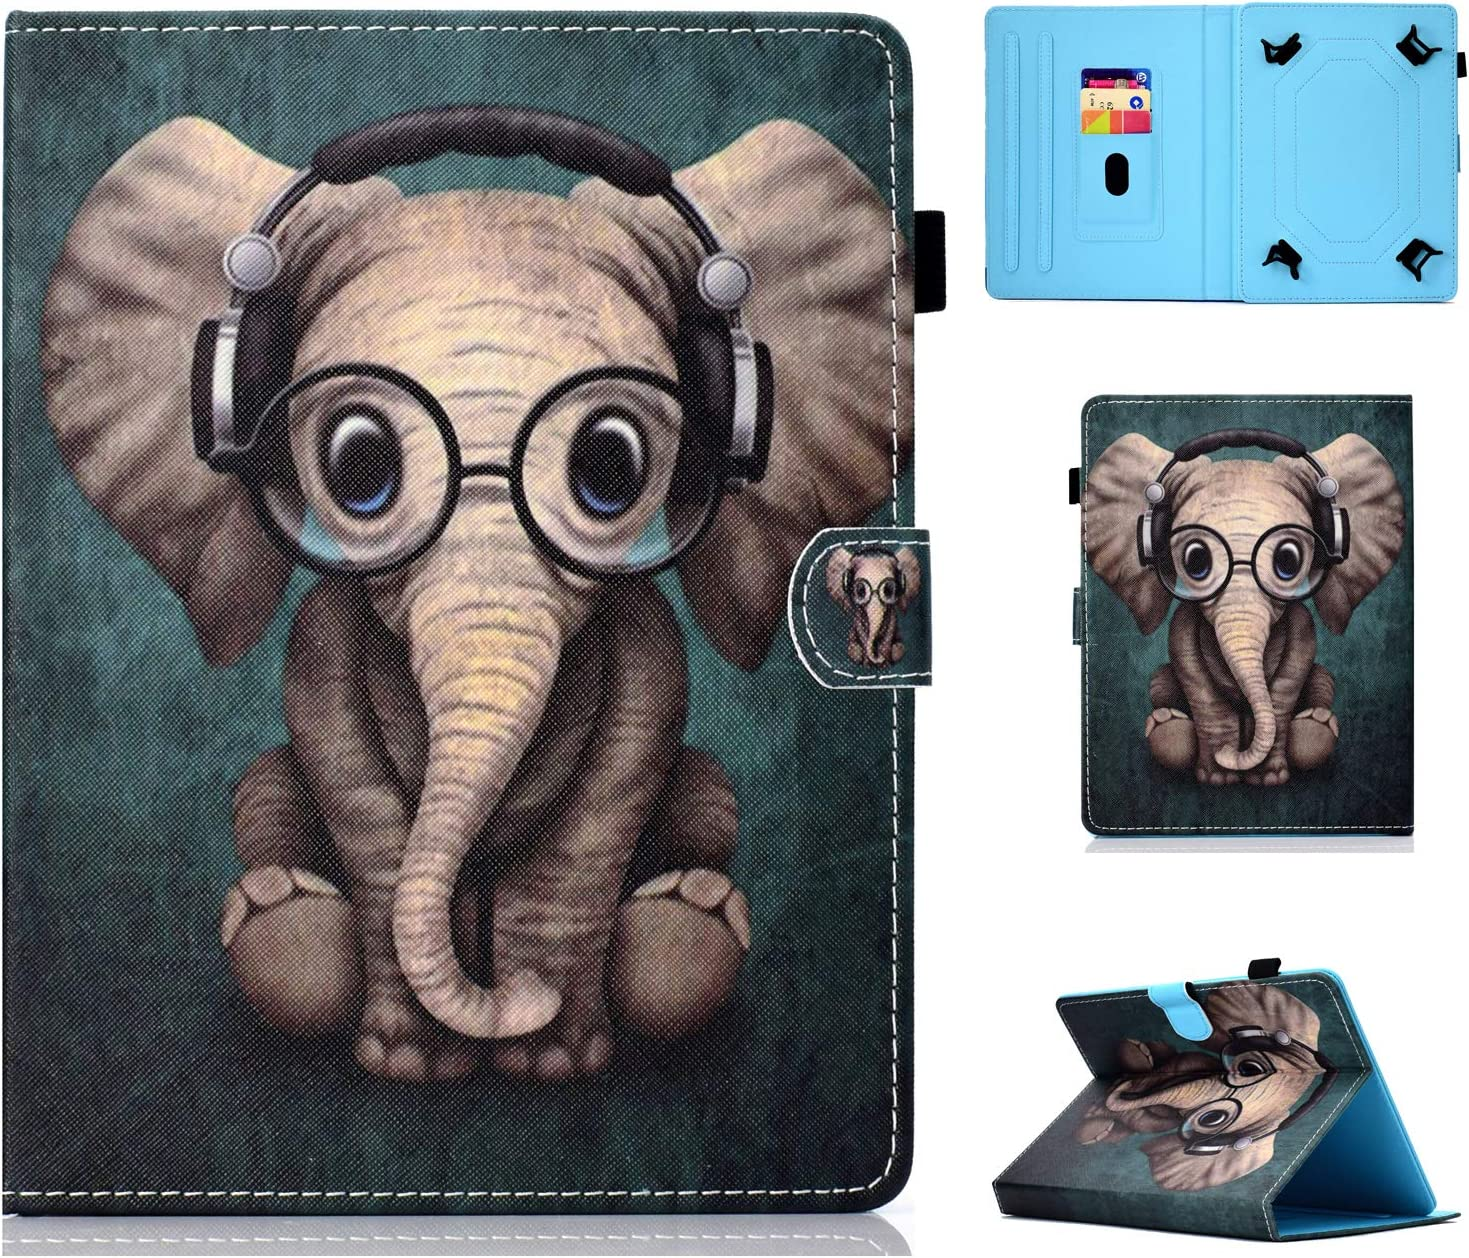 Universal Wallet Cover Supporto Si Adatta a Huawei MediaPad t2 7.0 Tablet 7 pollici